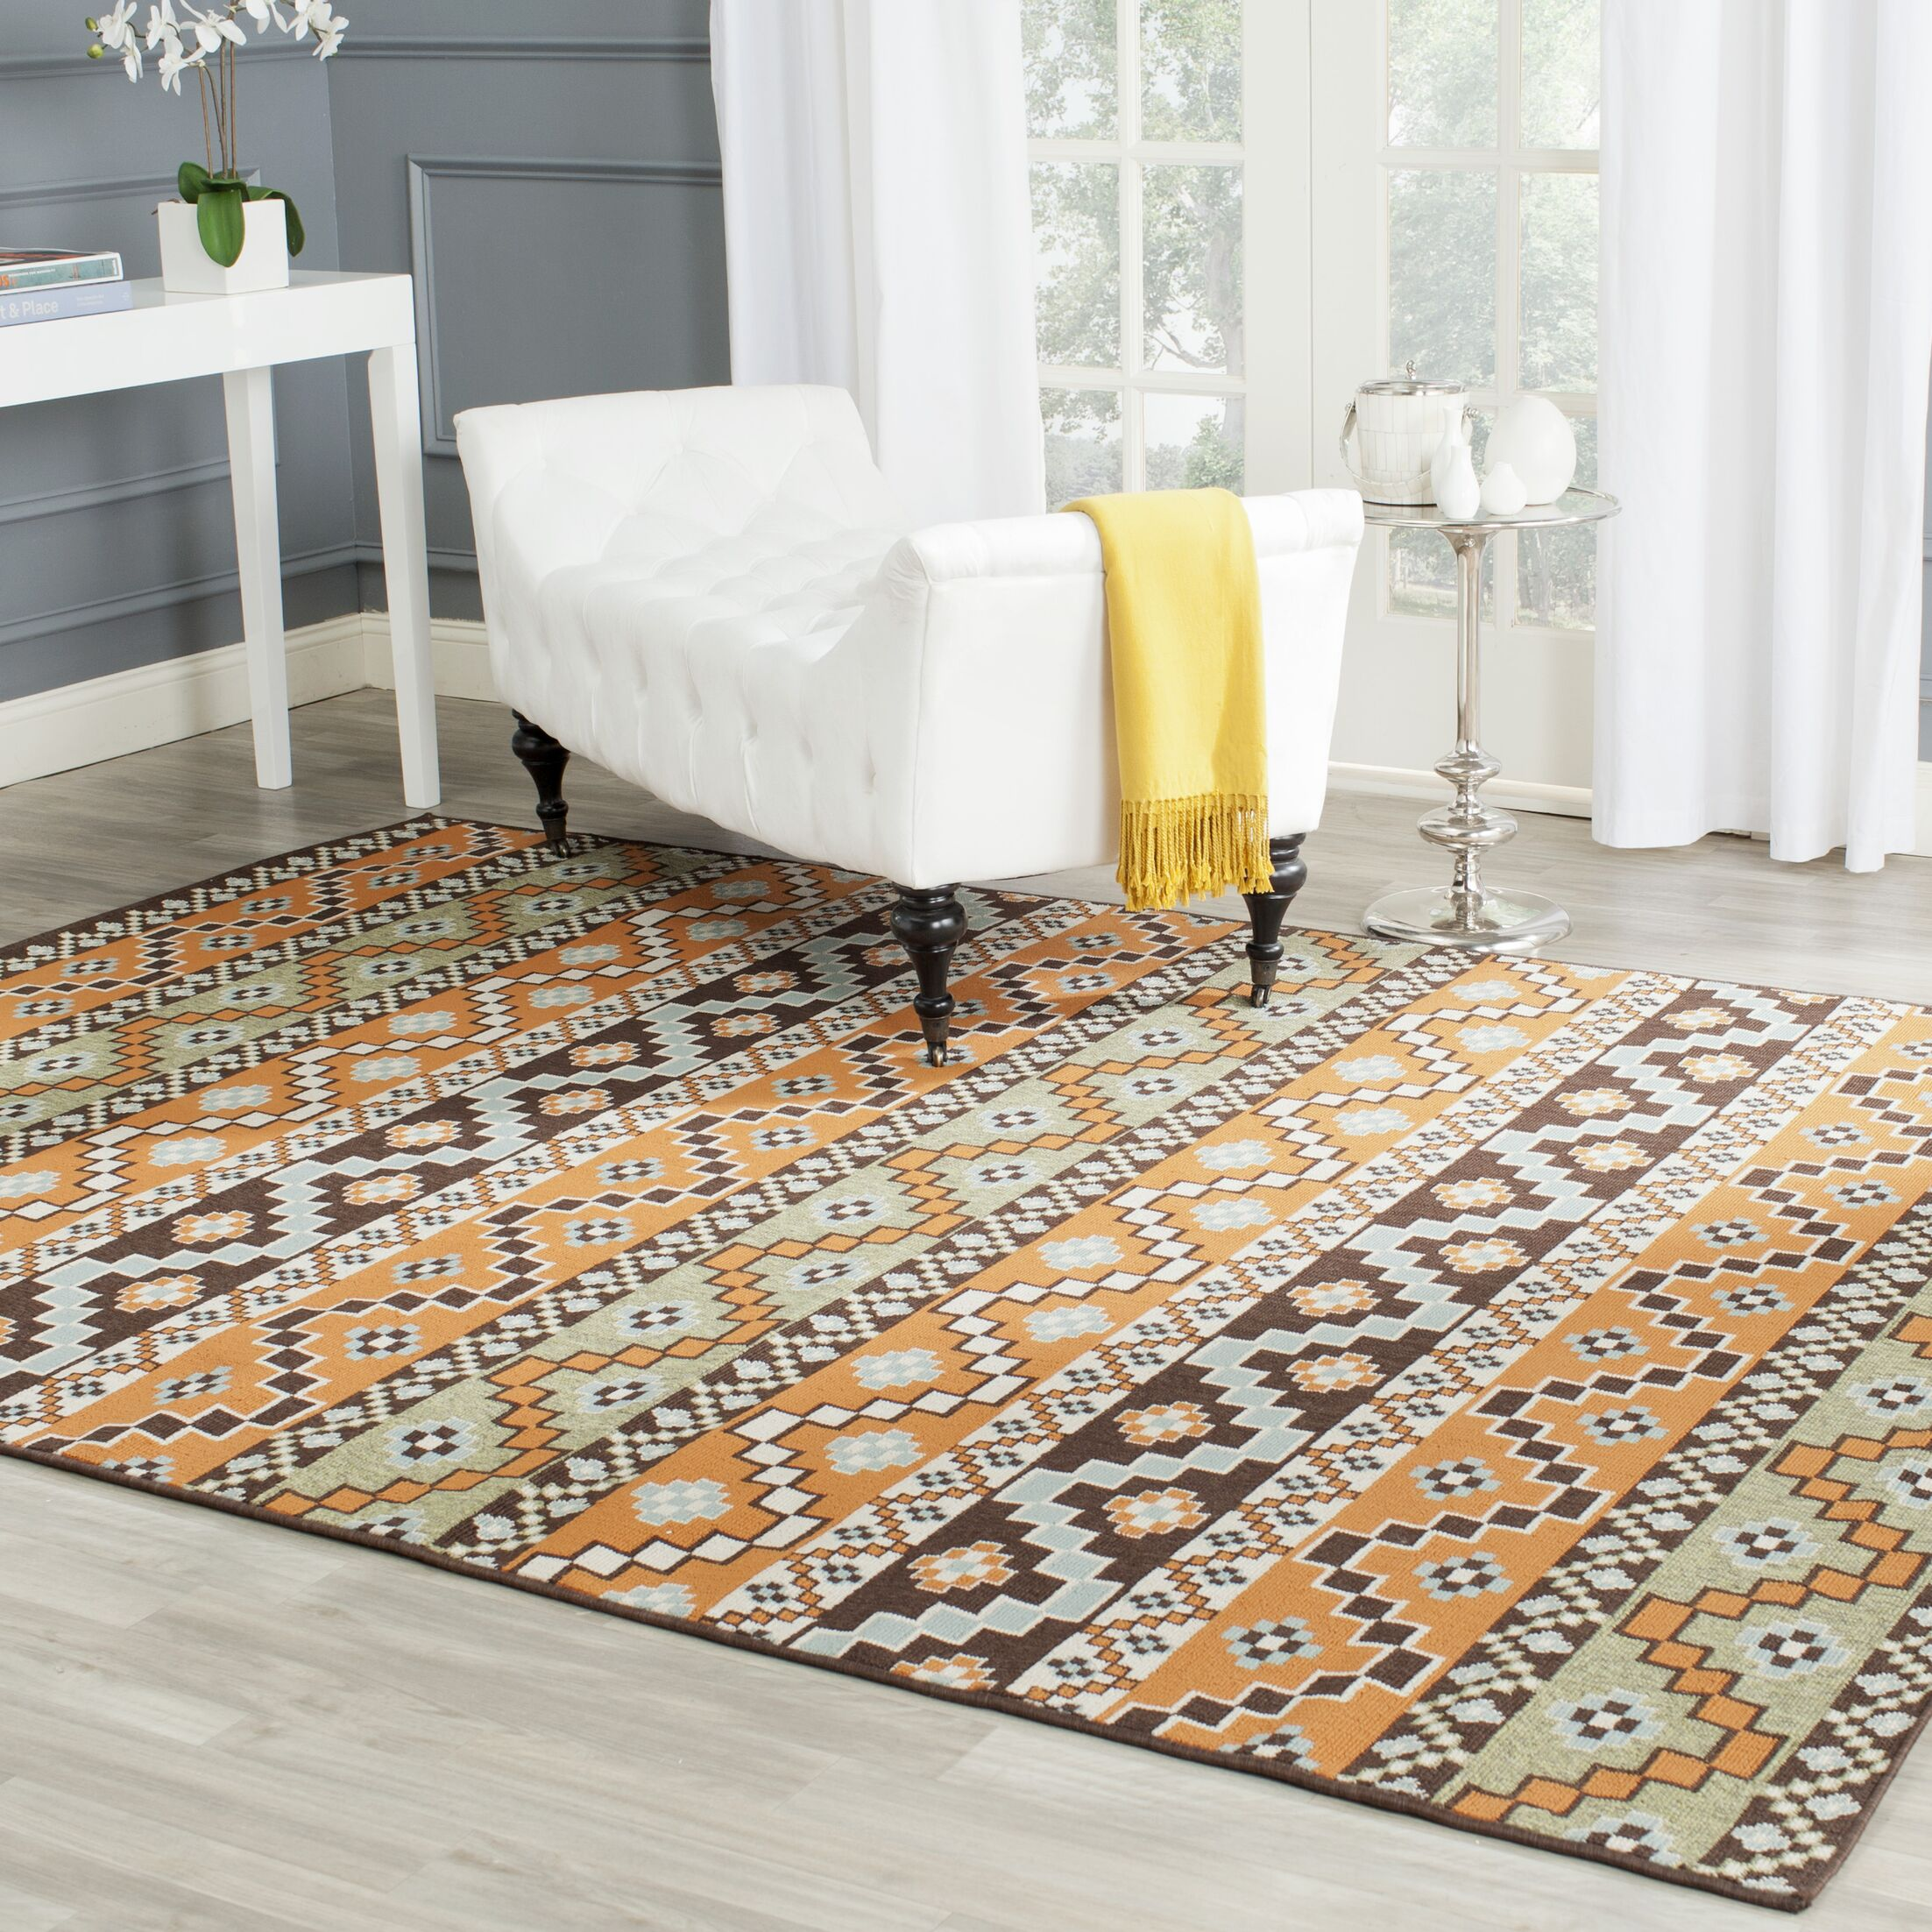 Zahr Orange/Brown Area Rug Rug Size: Rectangle 6'7